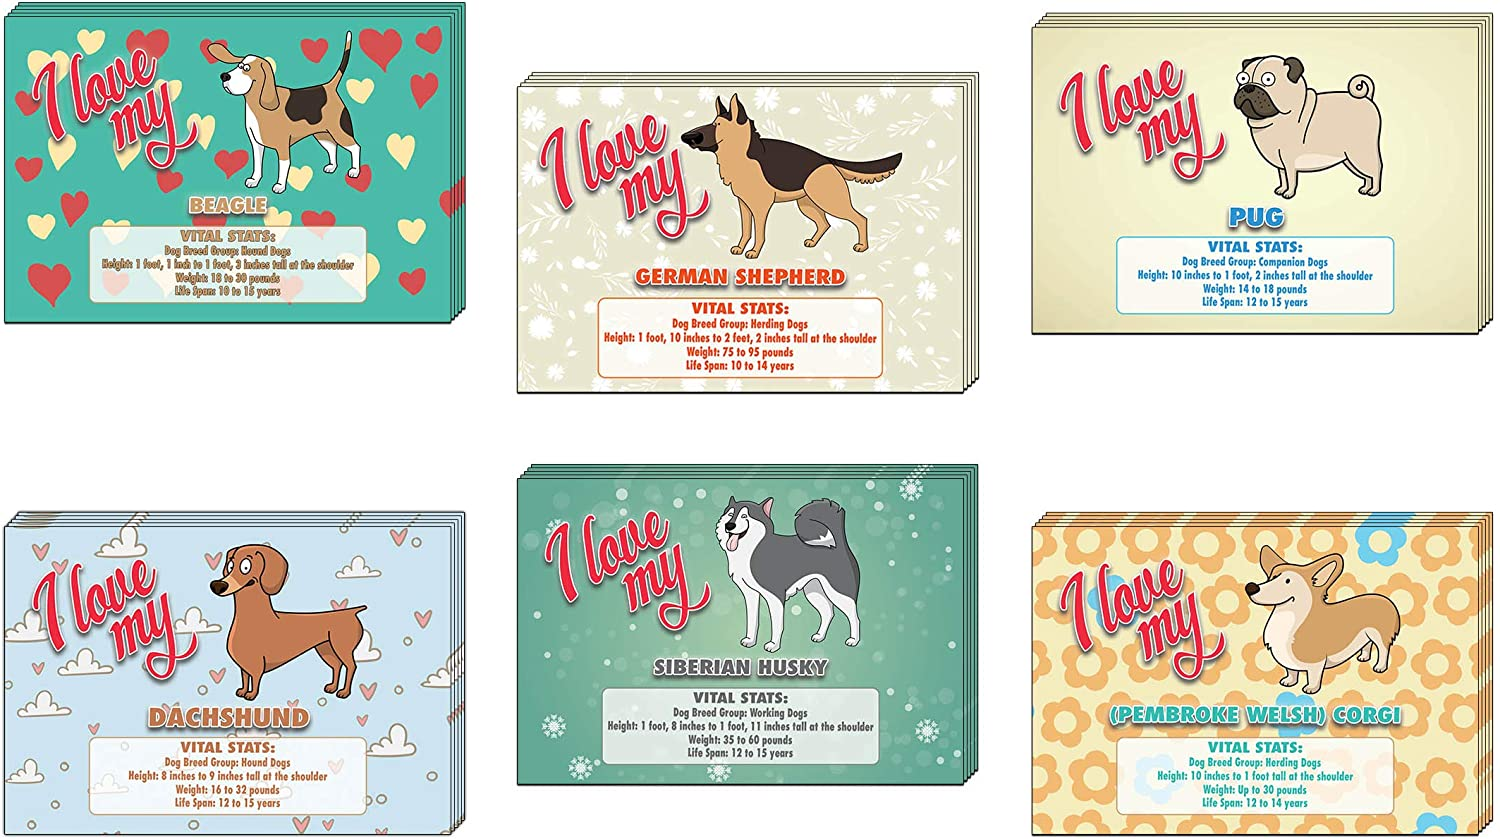 Creanoso Colorful I Love My Dog Postcards (30-Pack) – German Shephard, Siberian Husky, Beagle, Pug, Dachshund, Corgi with Vital Stats – 6 Greeting Cards Designs - Premium Greeting Cards Set